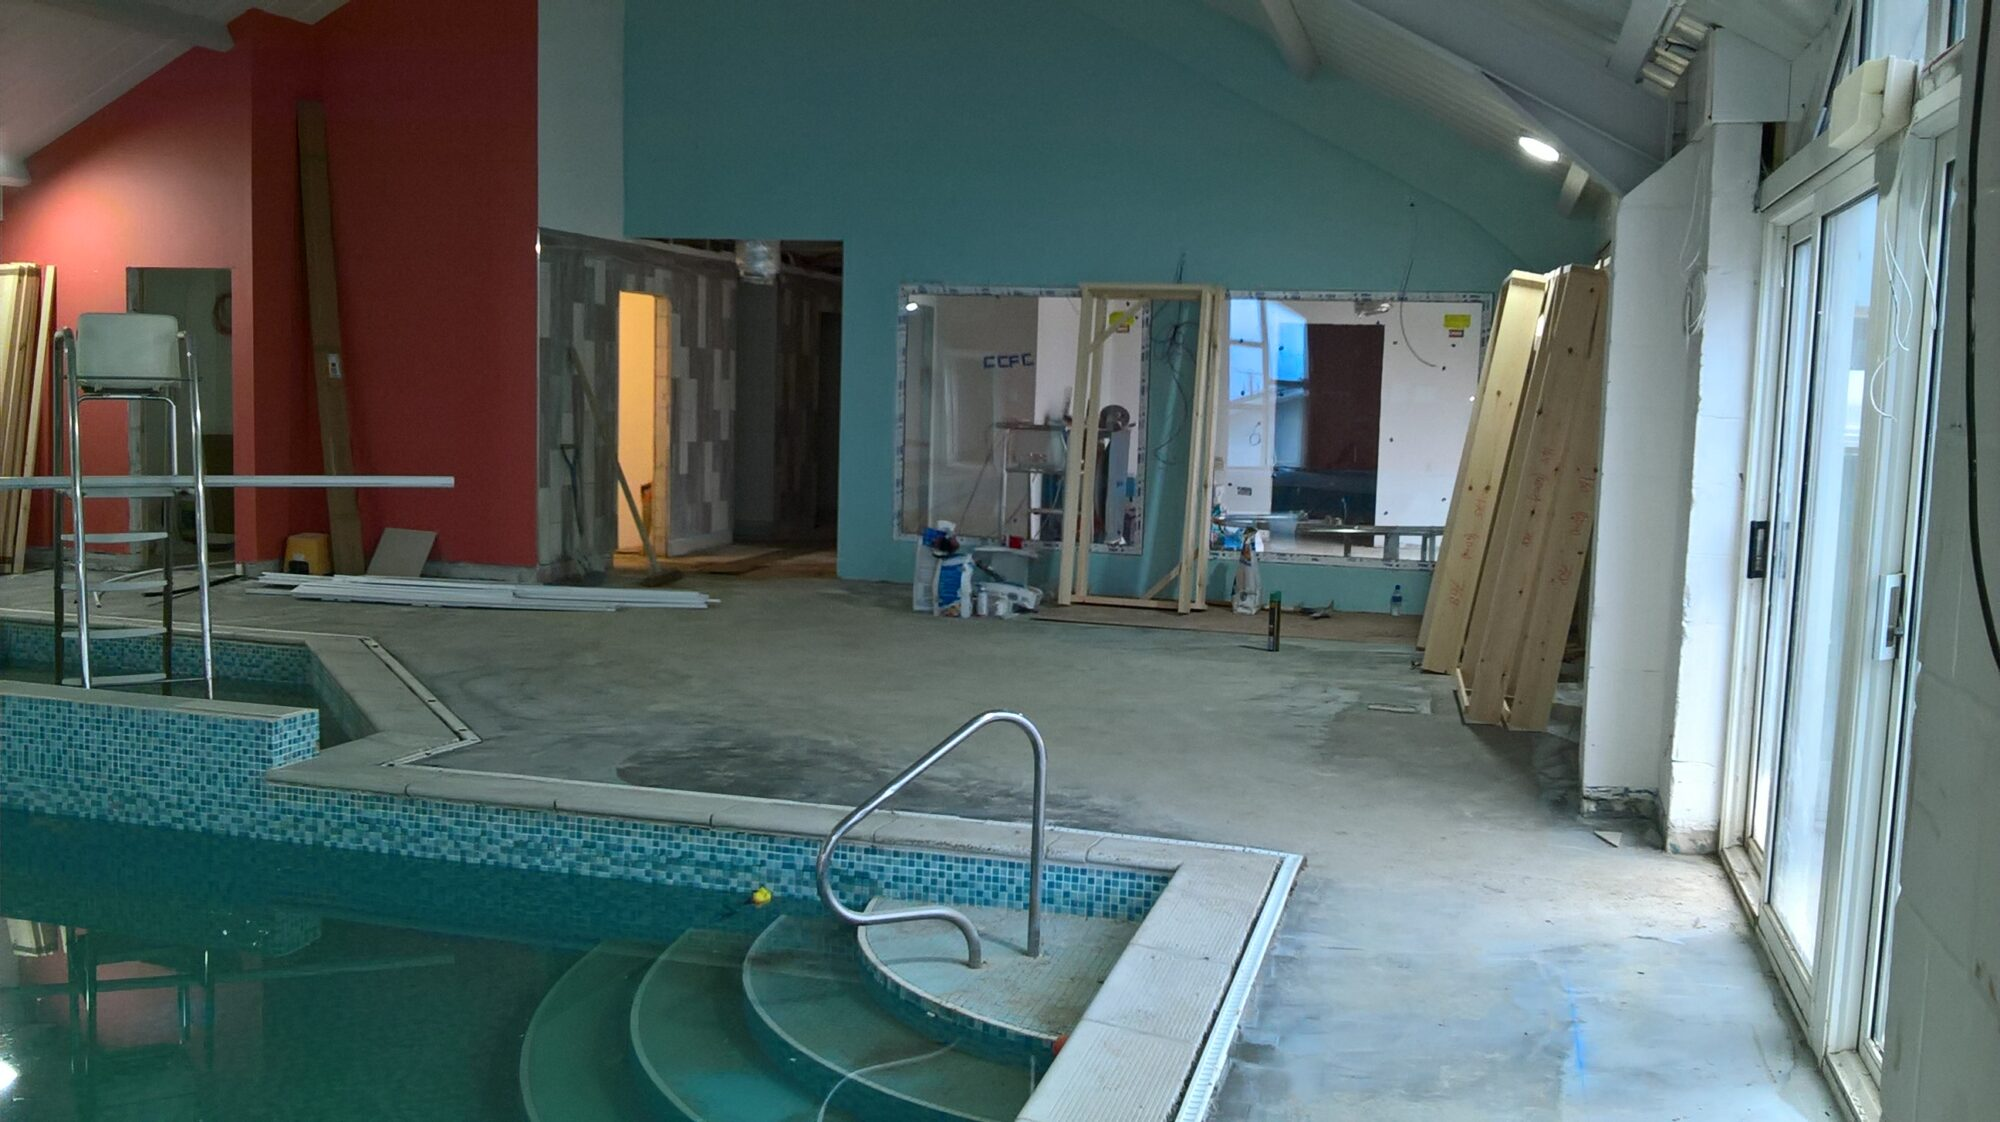 Photo of the swimming pool during redevelopment